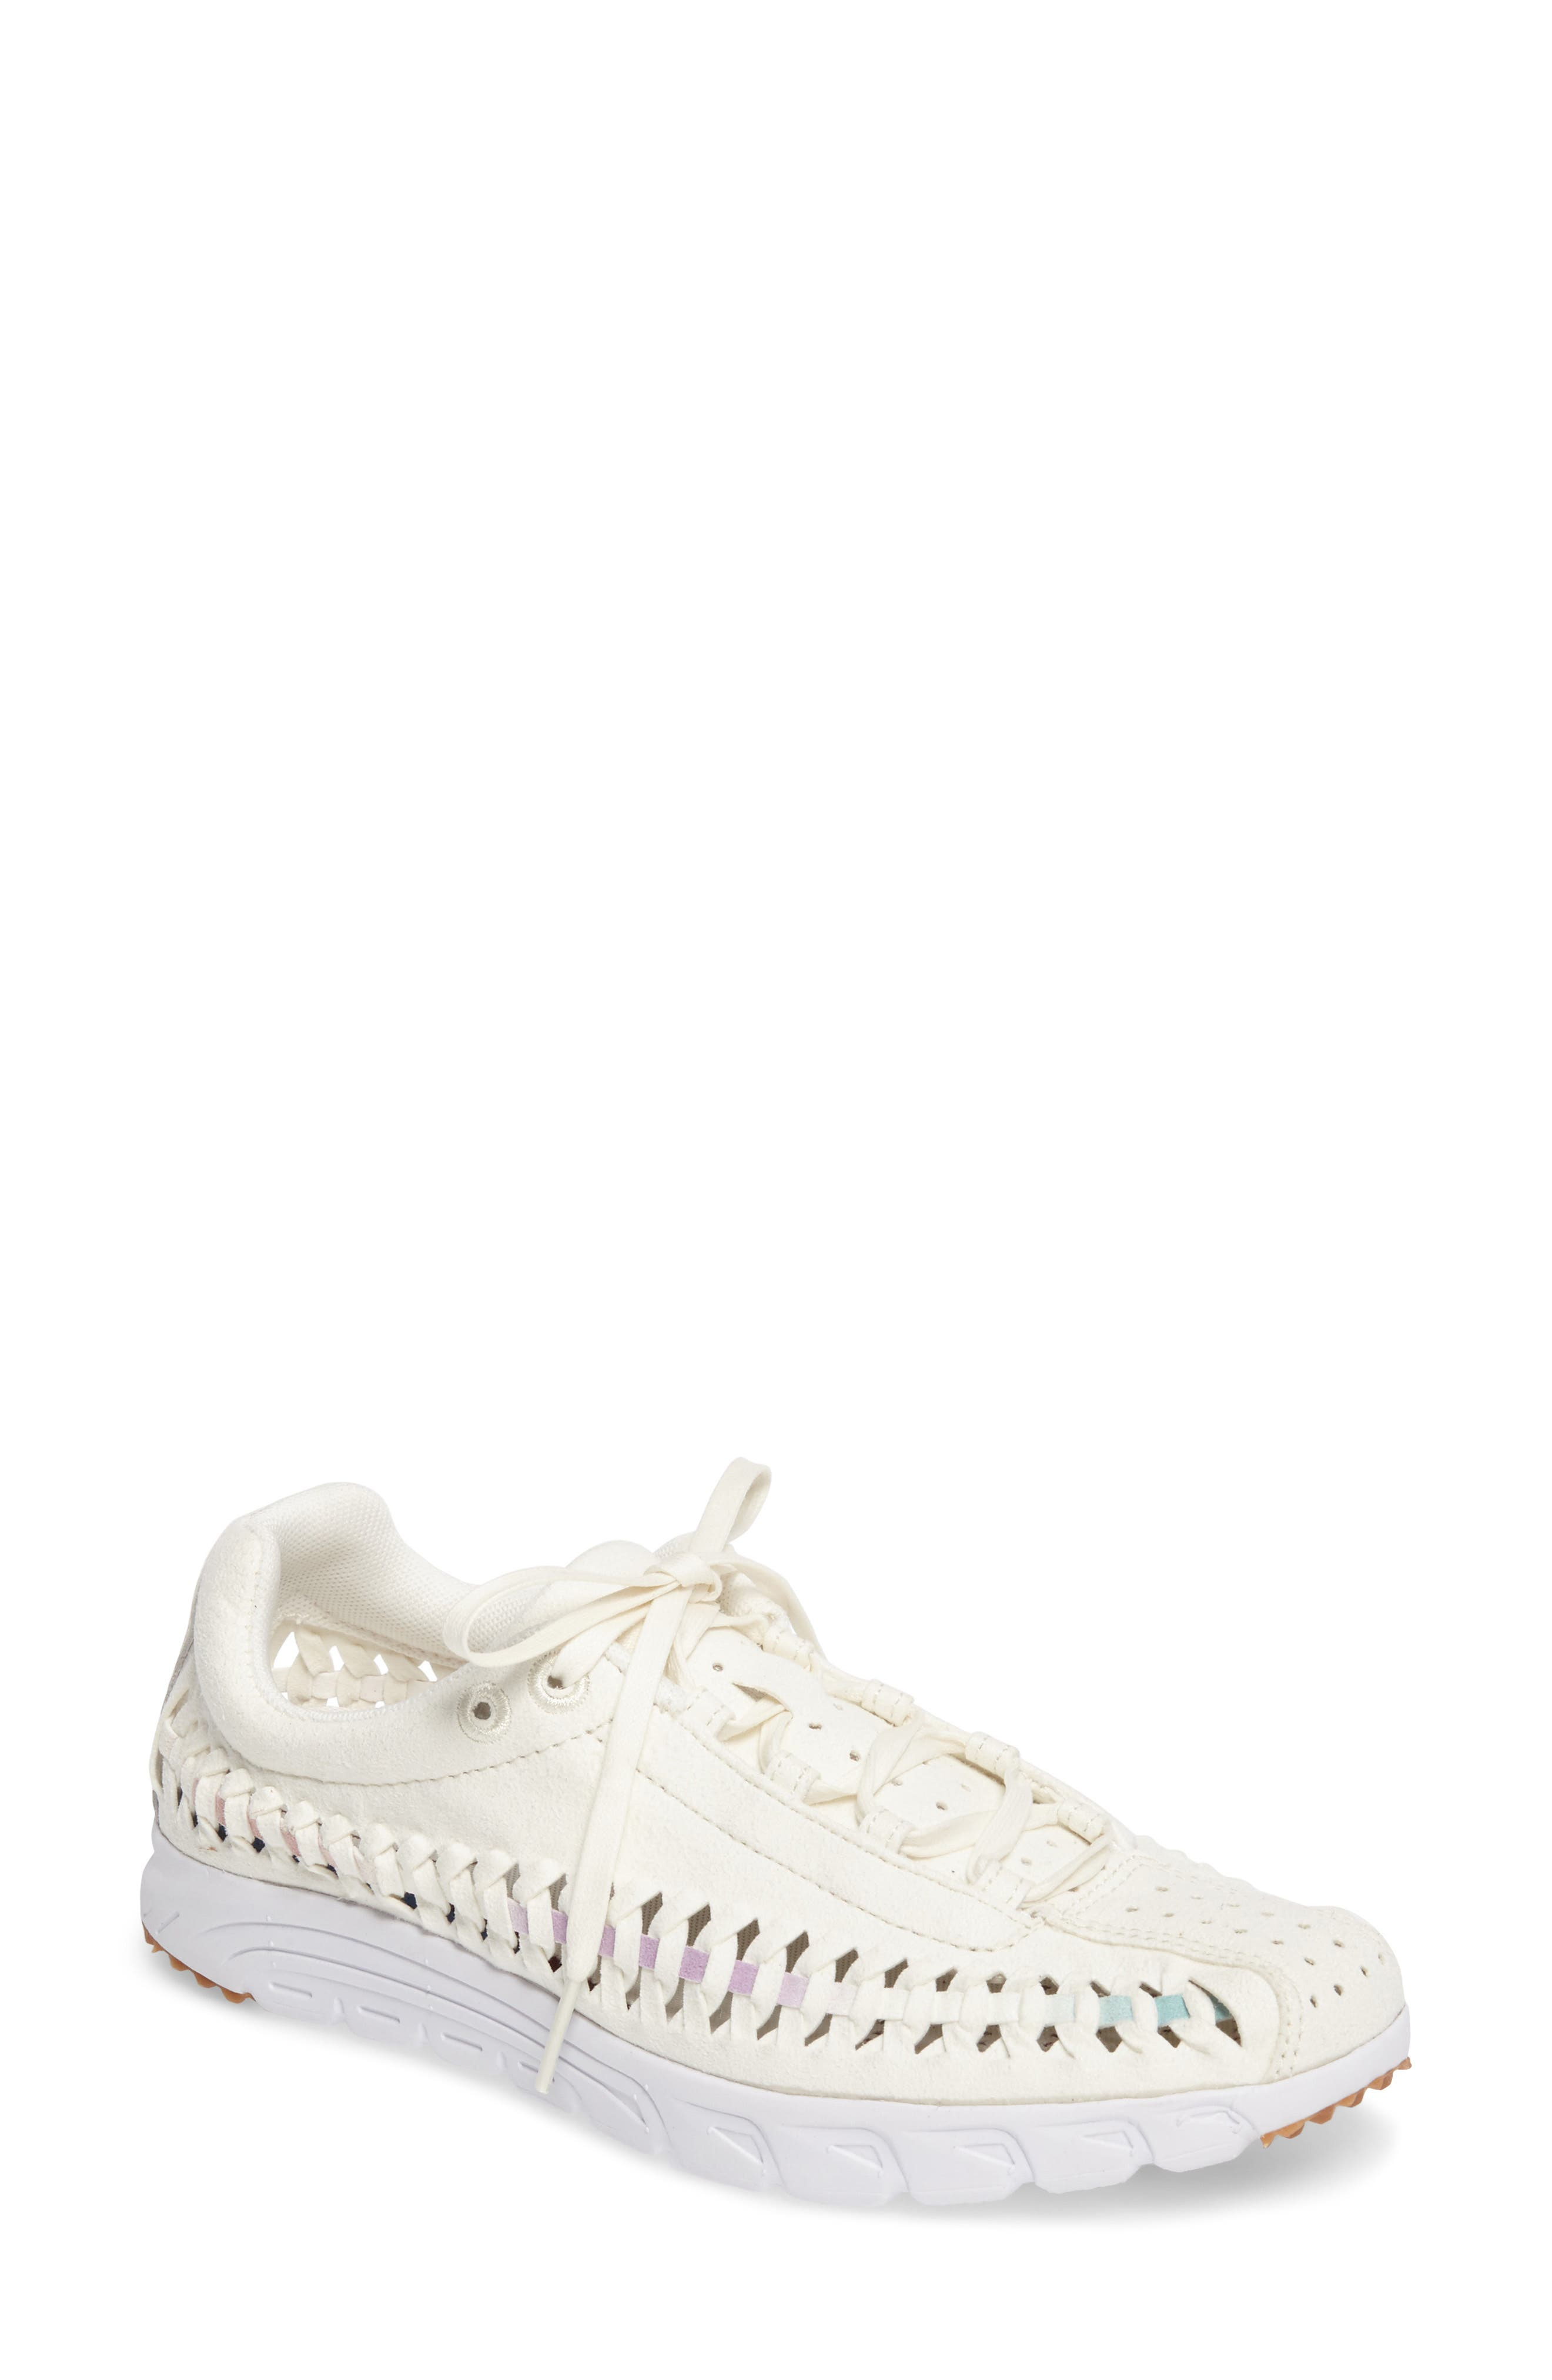 'Mayfly Woven' Sneaker,                         Main,                         color,